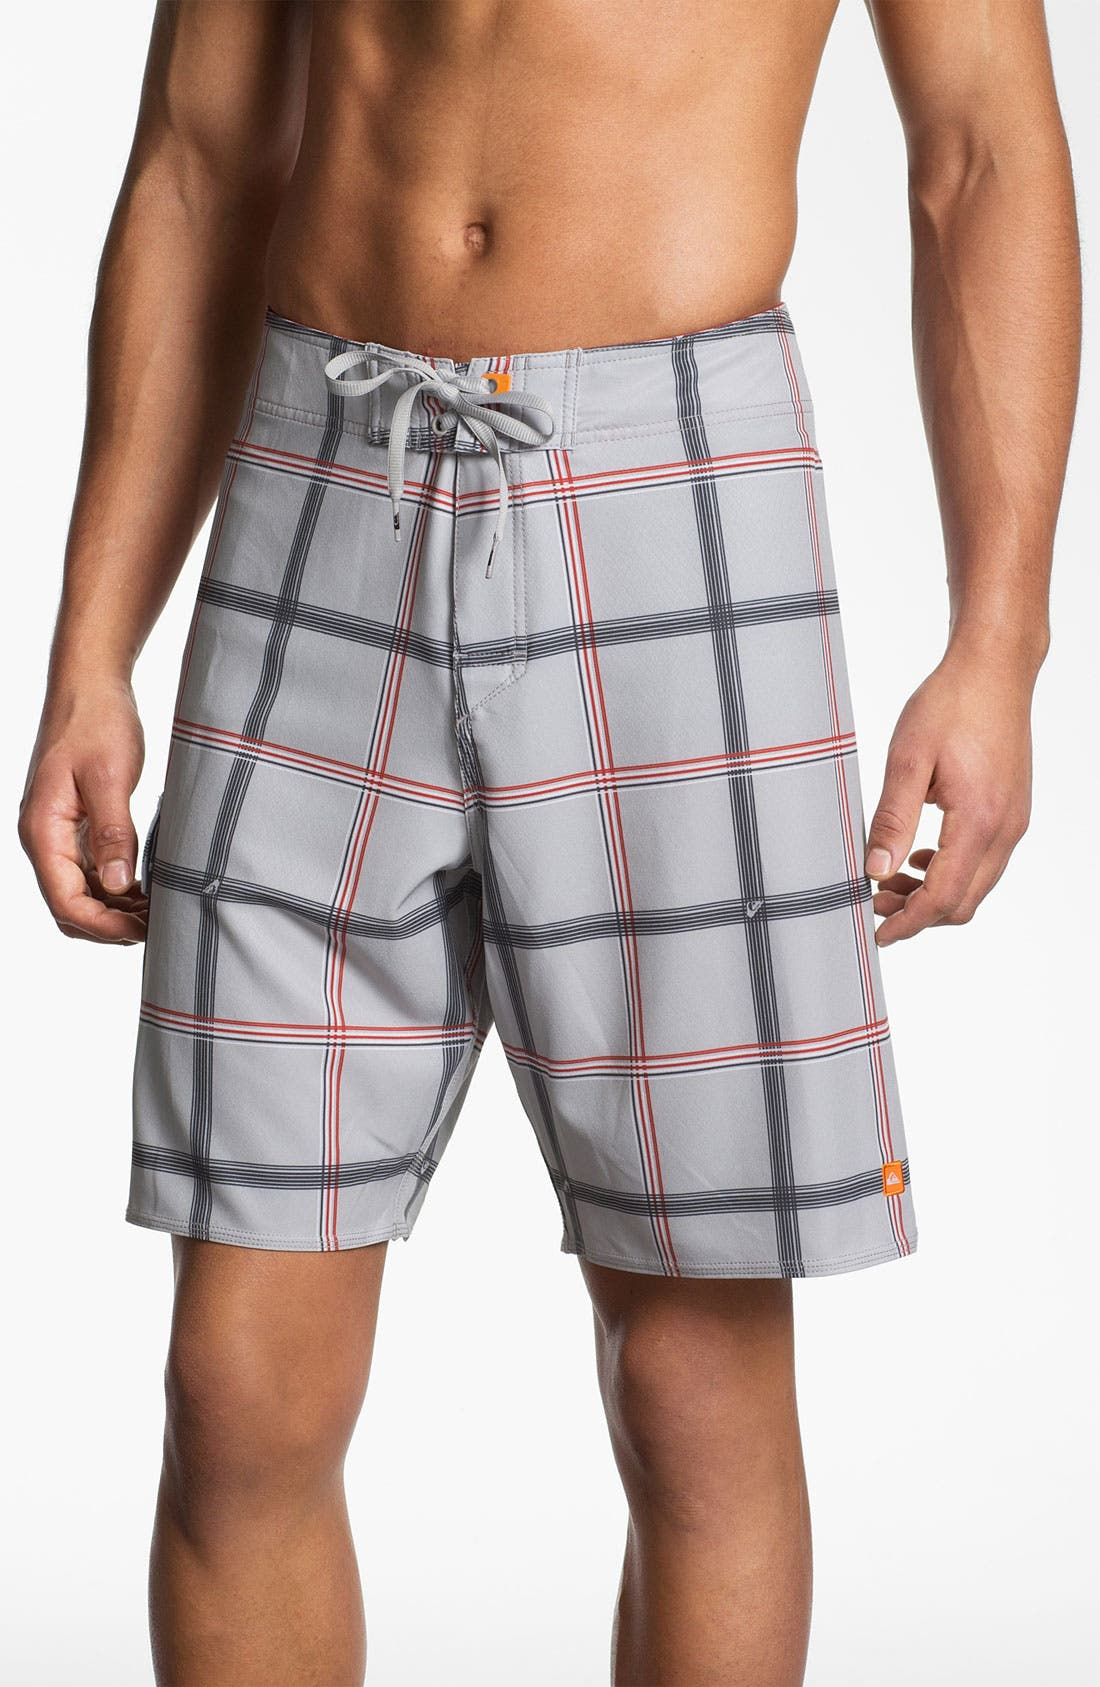 Alternate Image 1 Selected - Quiksilver Waterman Collection 'Square Root' Board Shorts